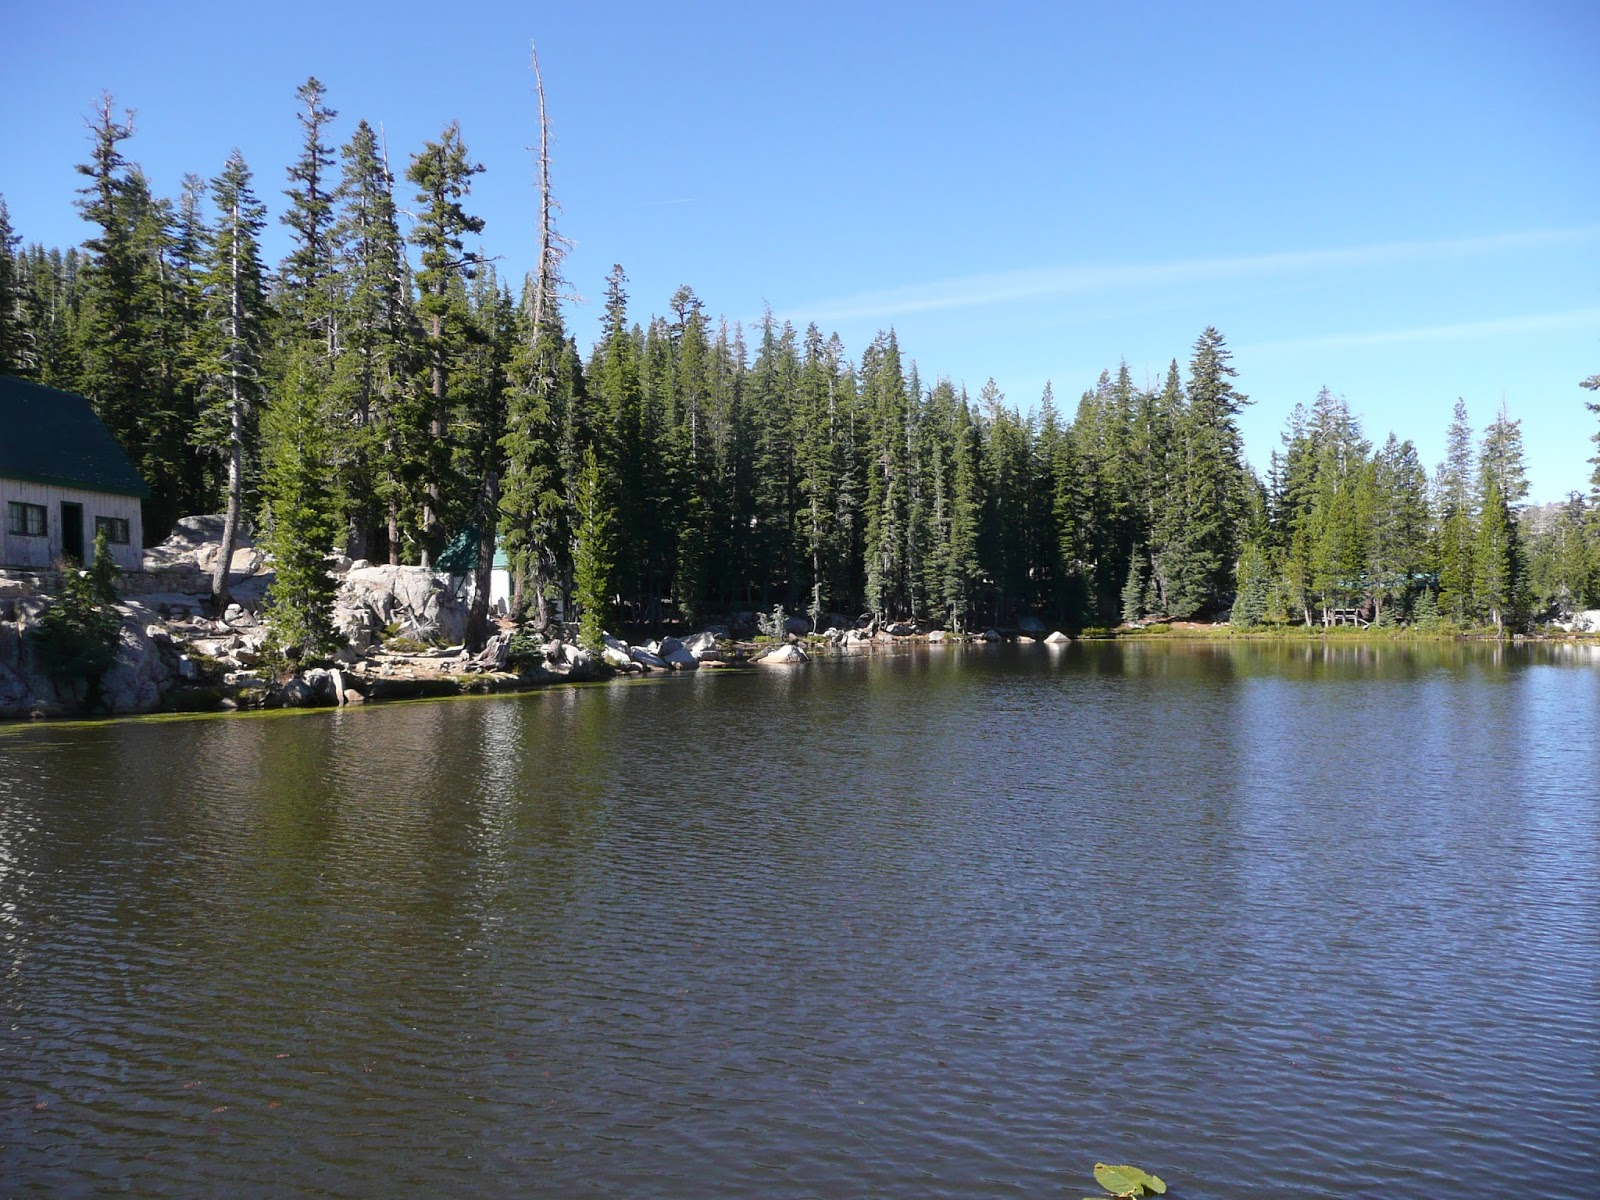 Northern california trout a new lake and a not so new lake for Mosquito lake fishing